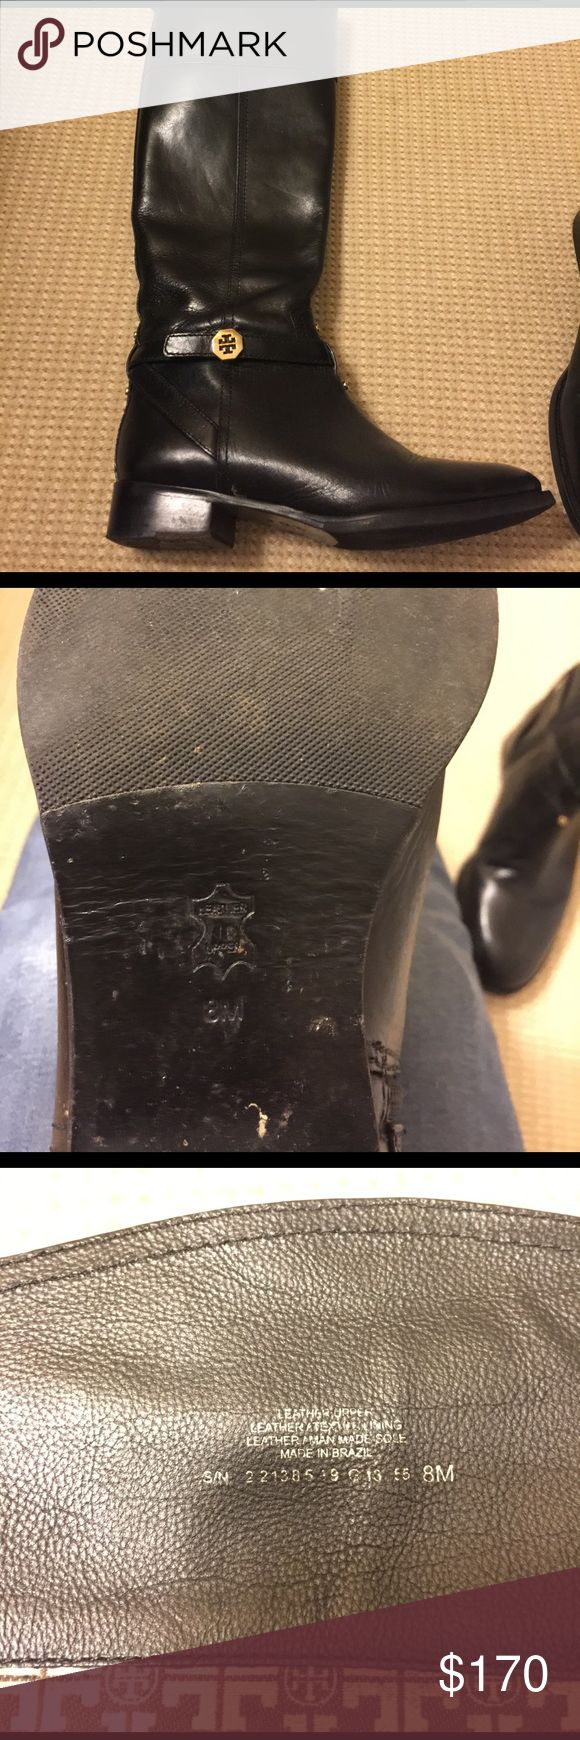 Tory Burch 8.5 black leather riding boot Hardly worn black riding boot Tory Burch Shoes Heeled Boots